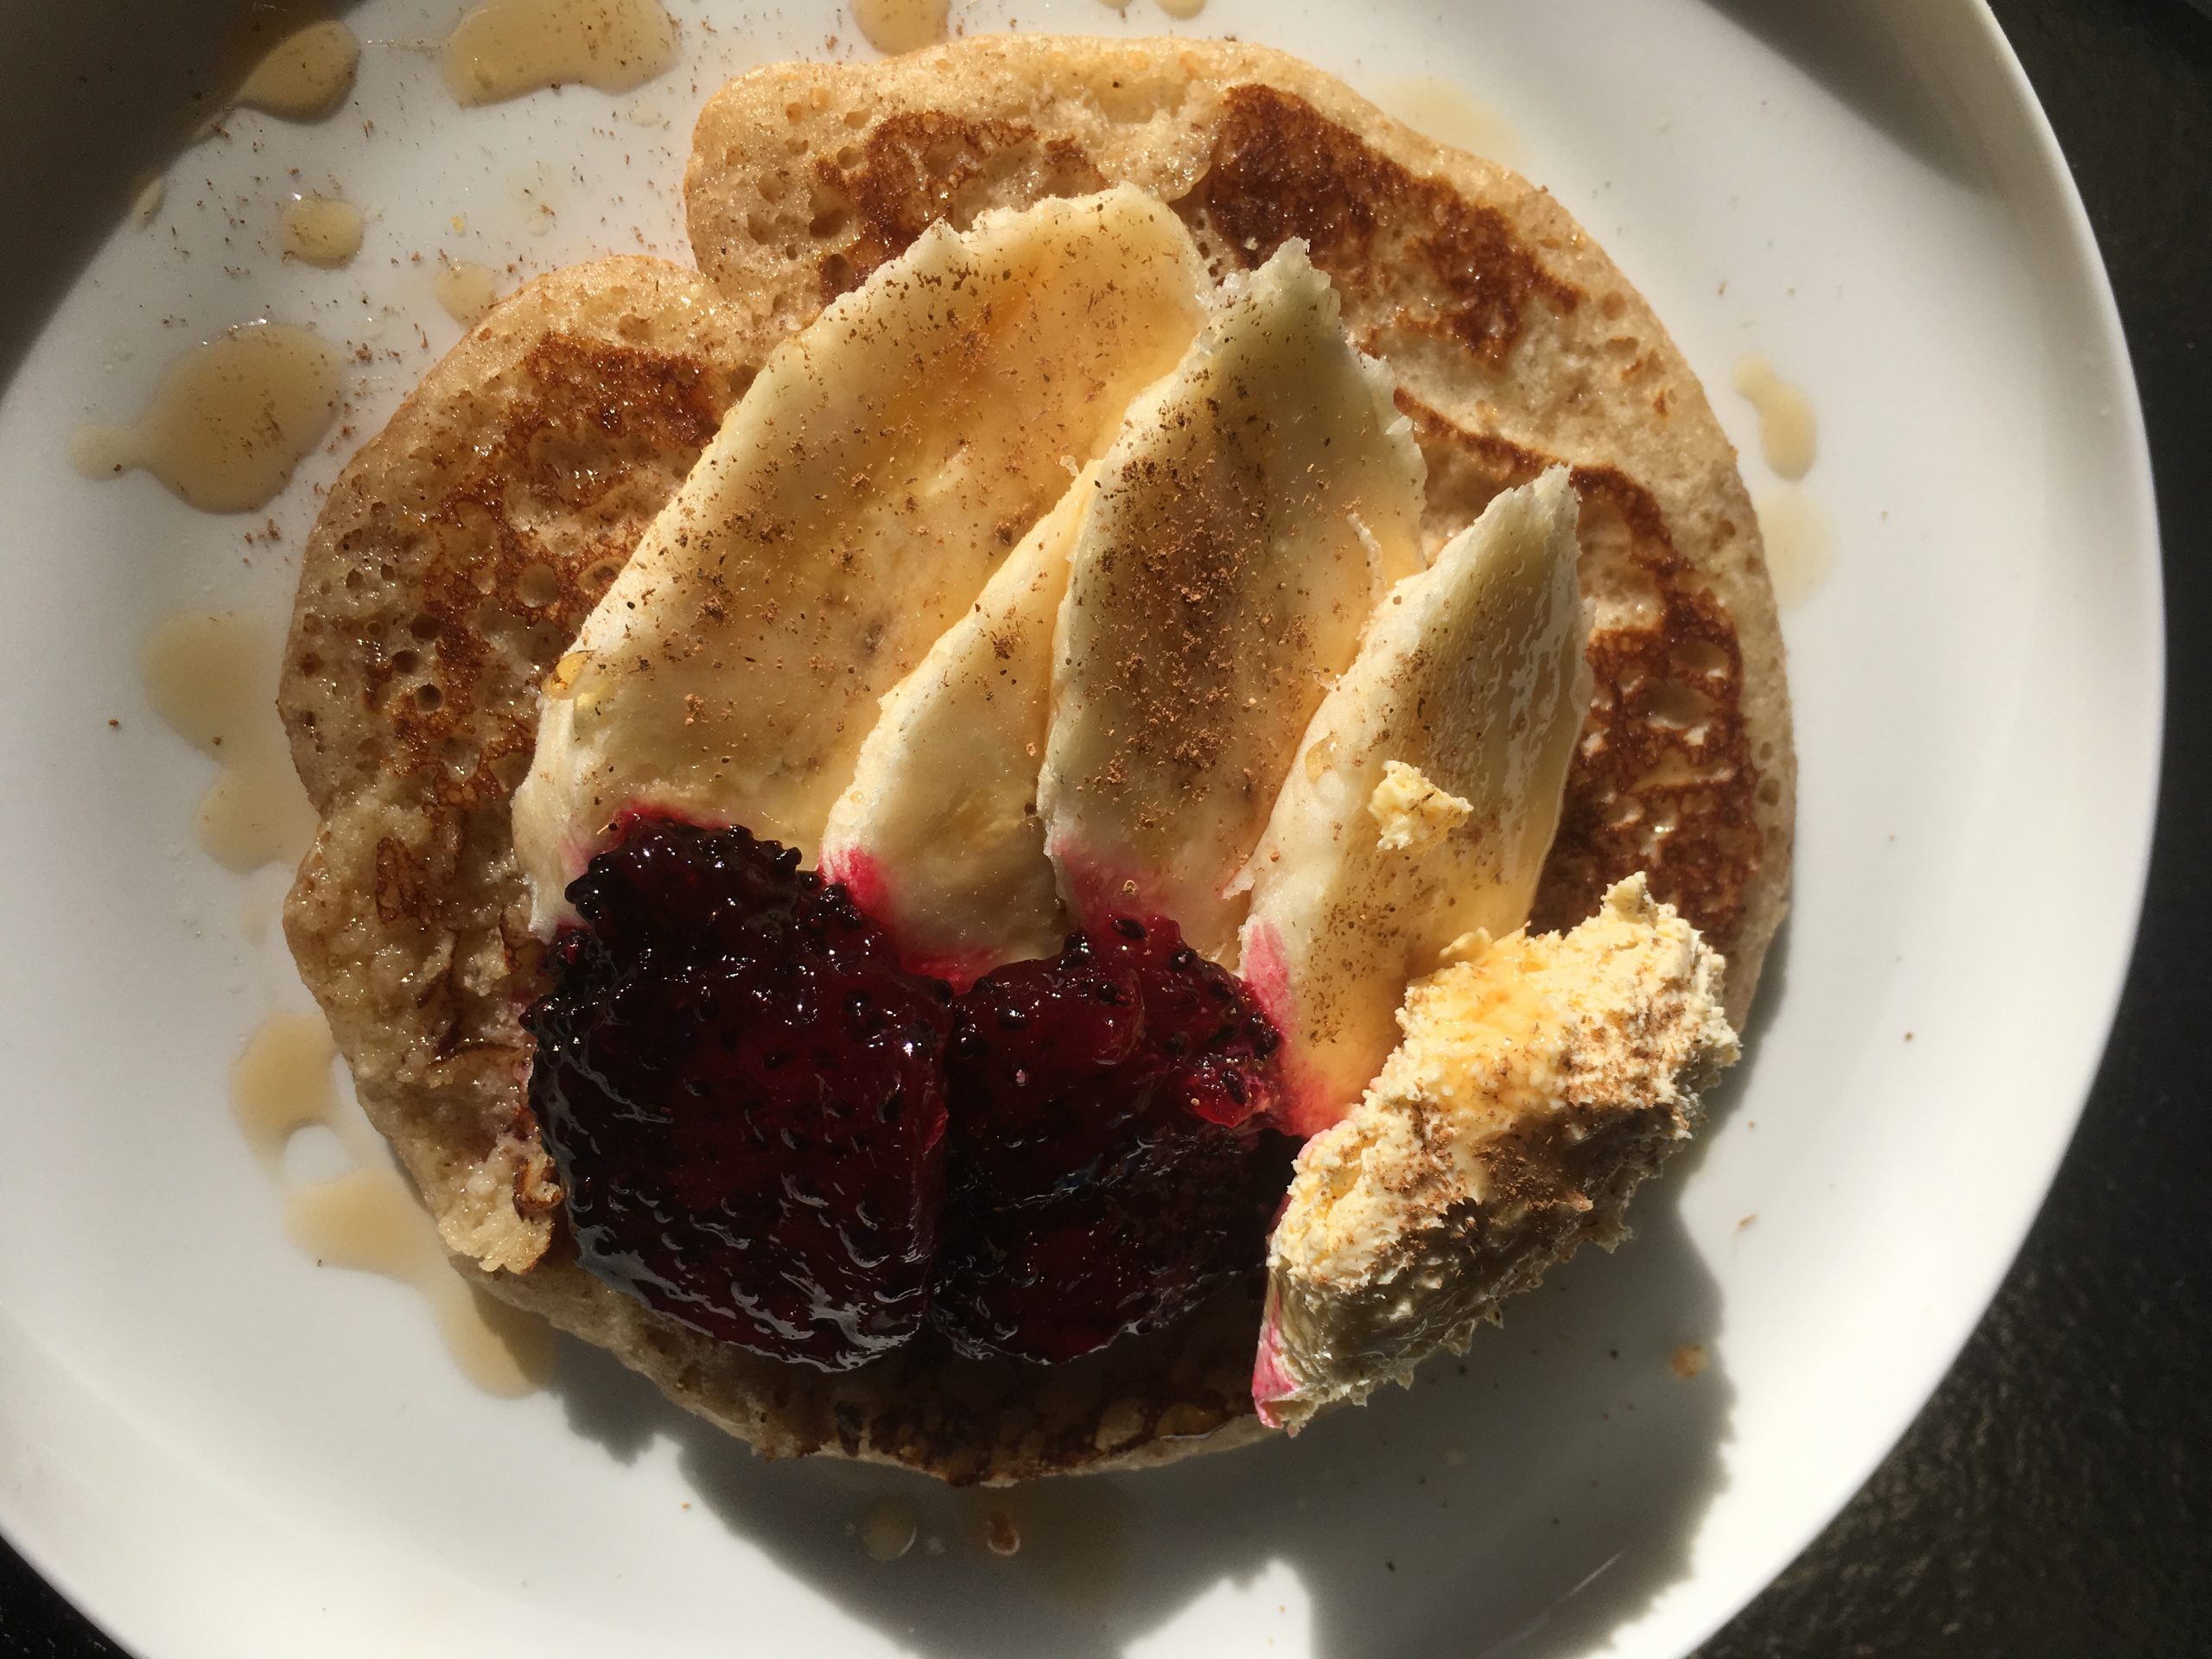 Pancakes served with sliced banana and dragon fruit with cinnamon, honey and cream